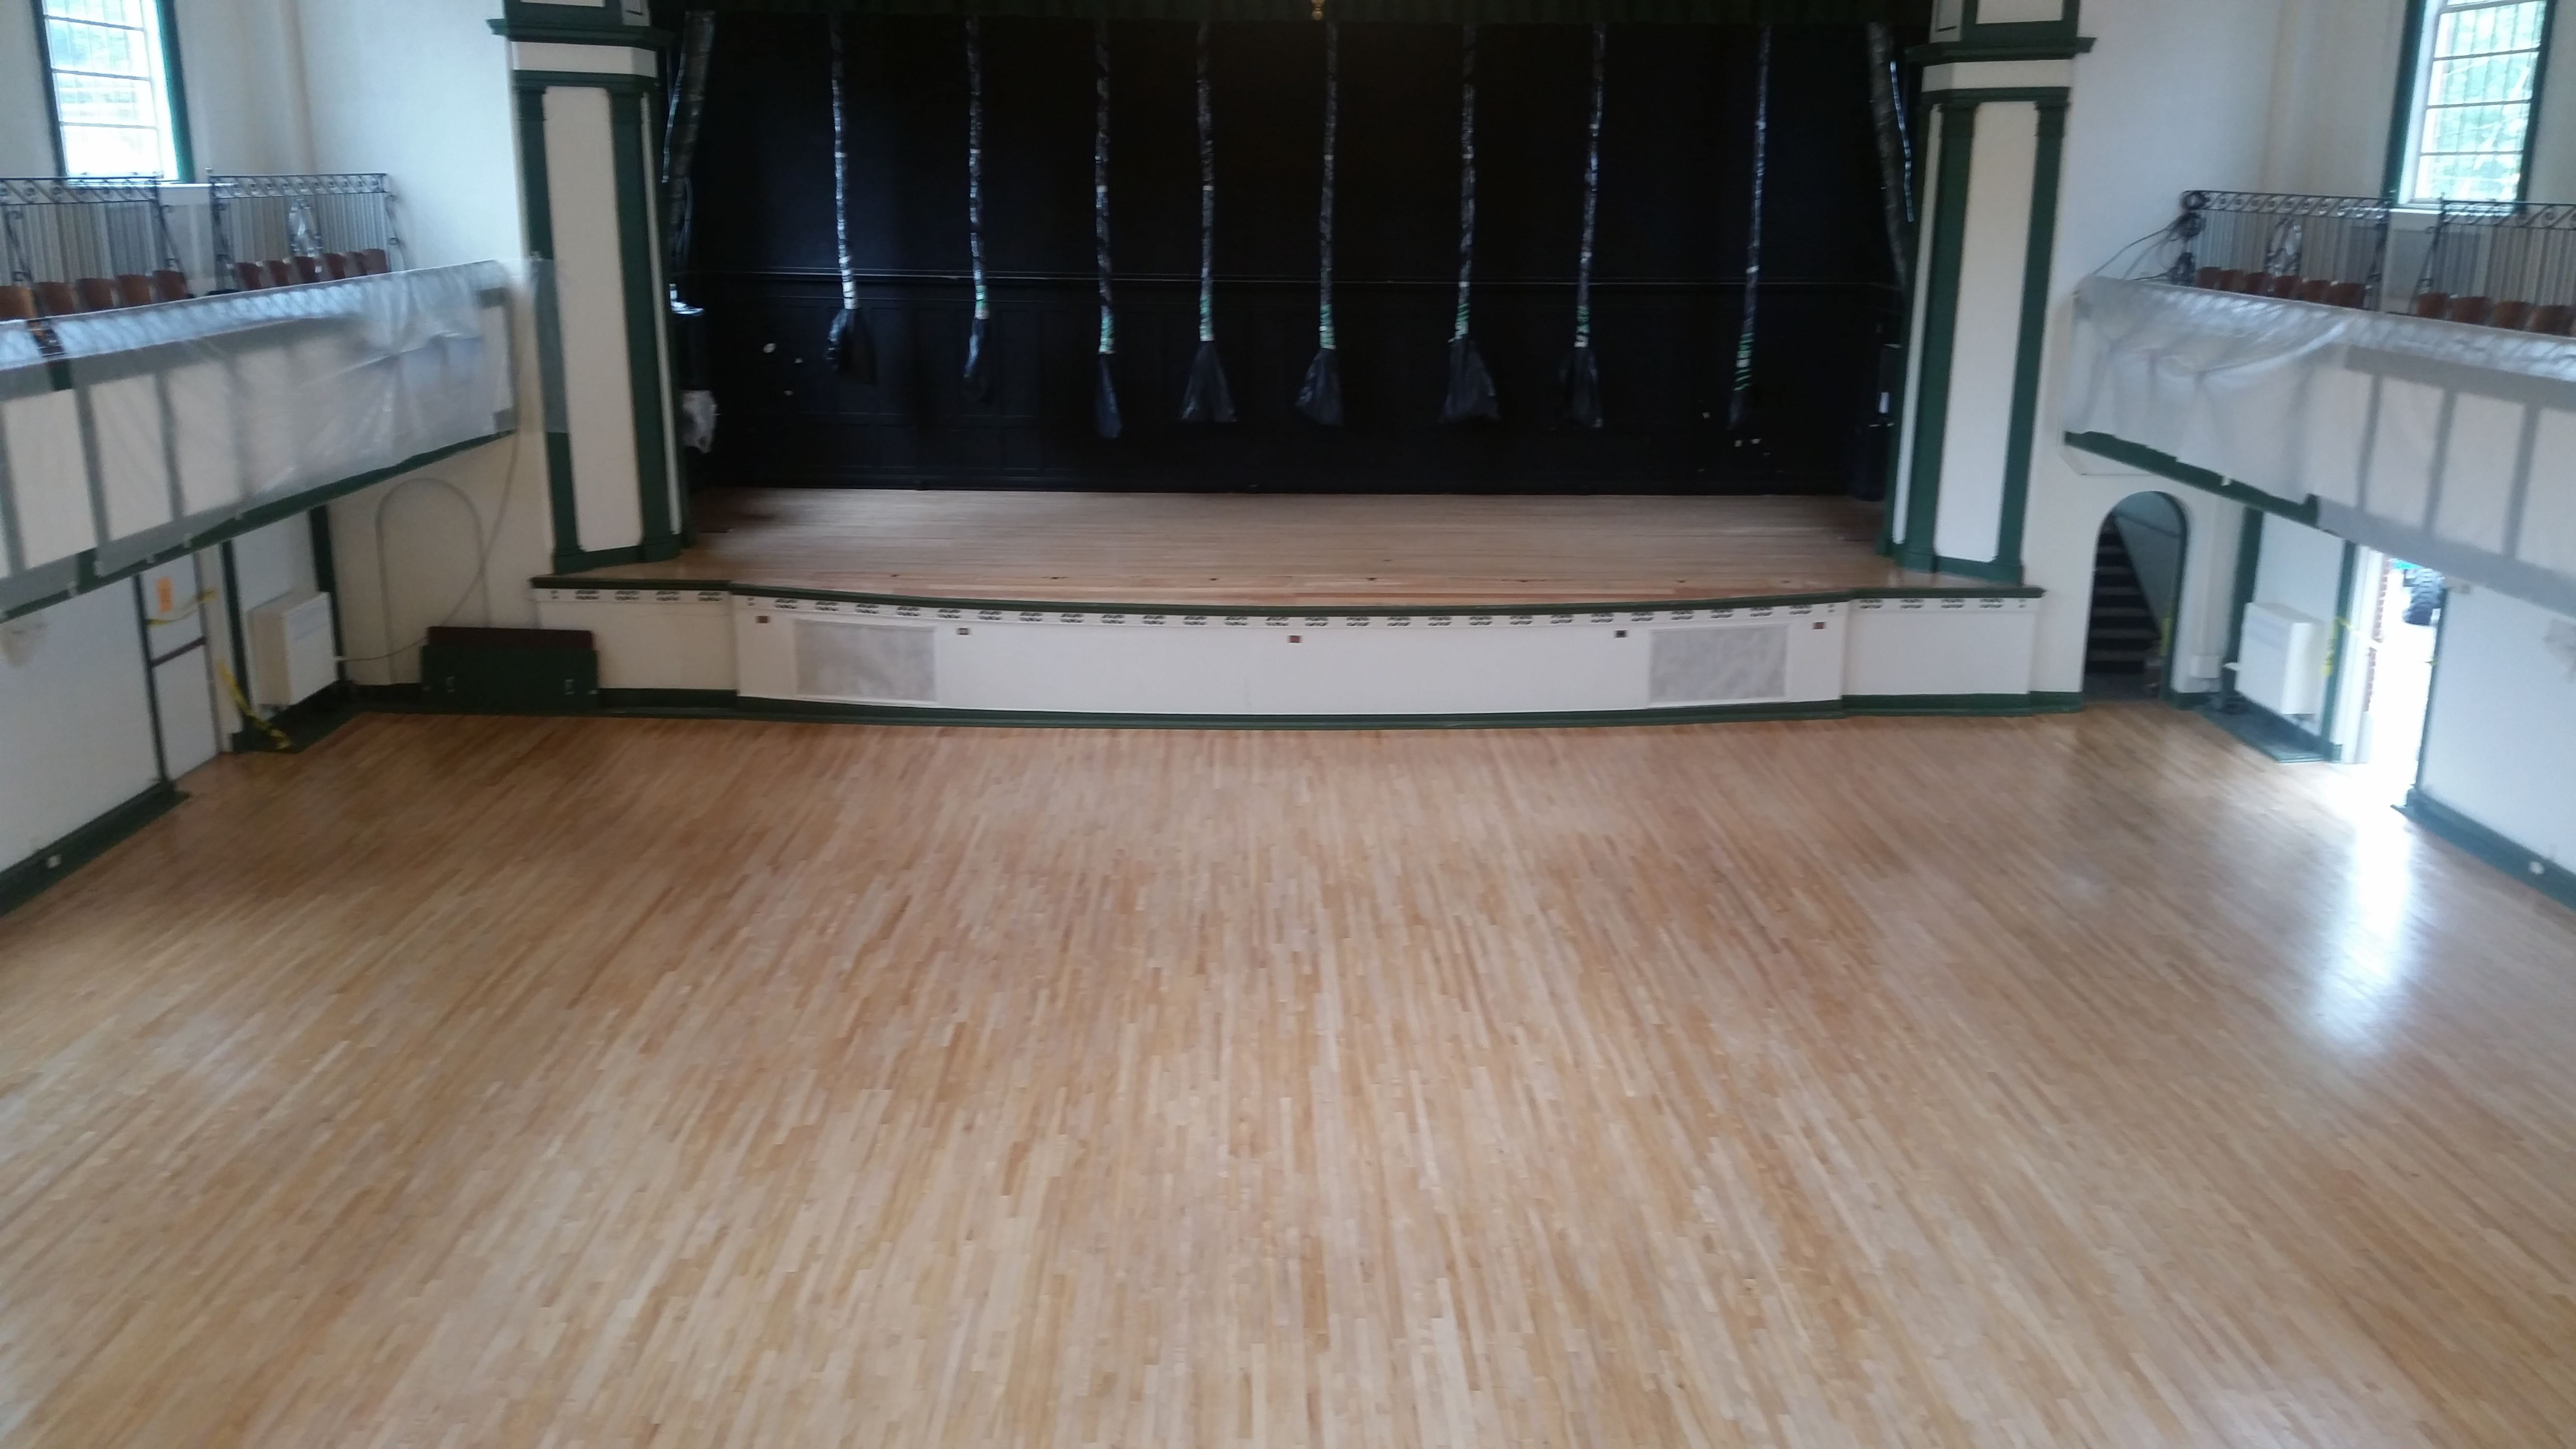 hardwood flooring ontario of 40 flooring installation new york city concept with rochester hardwood floors of utica home inspiration of flooring installation new york city of flooring installation